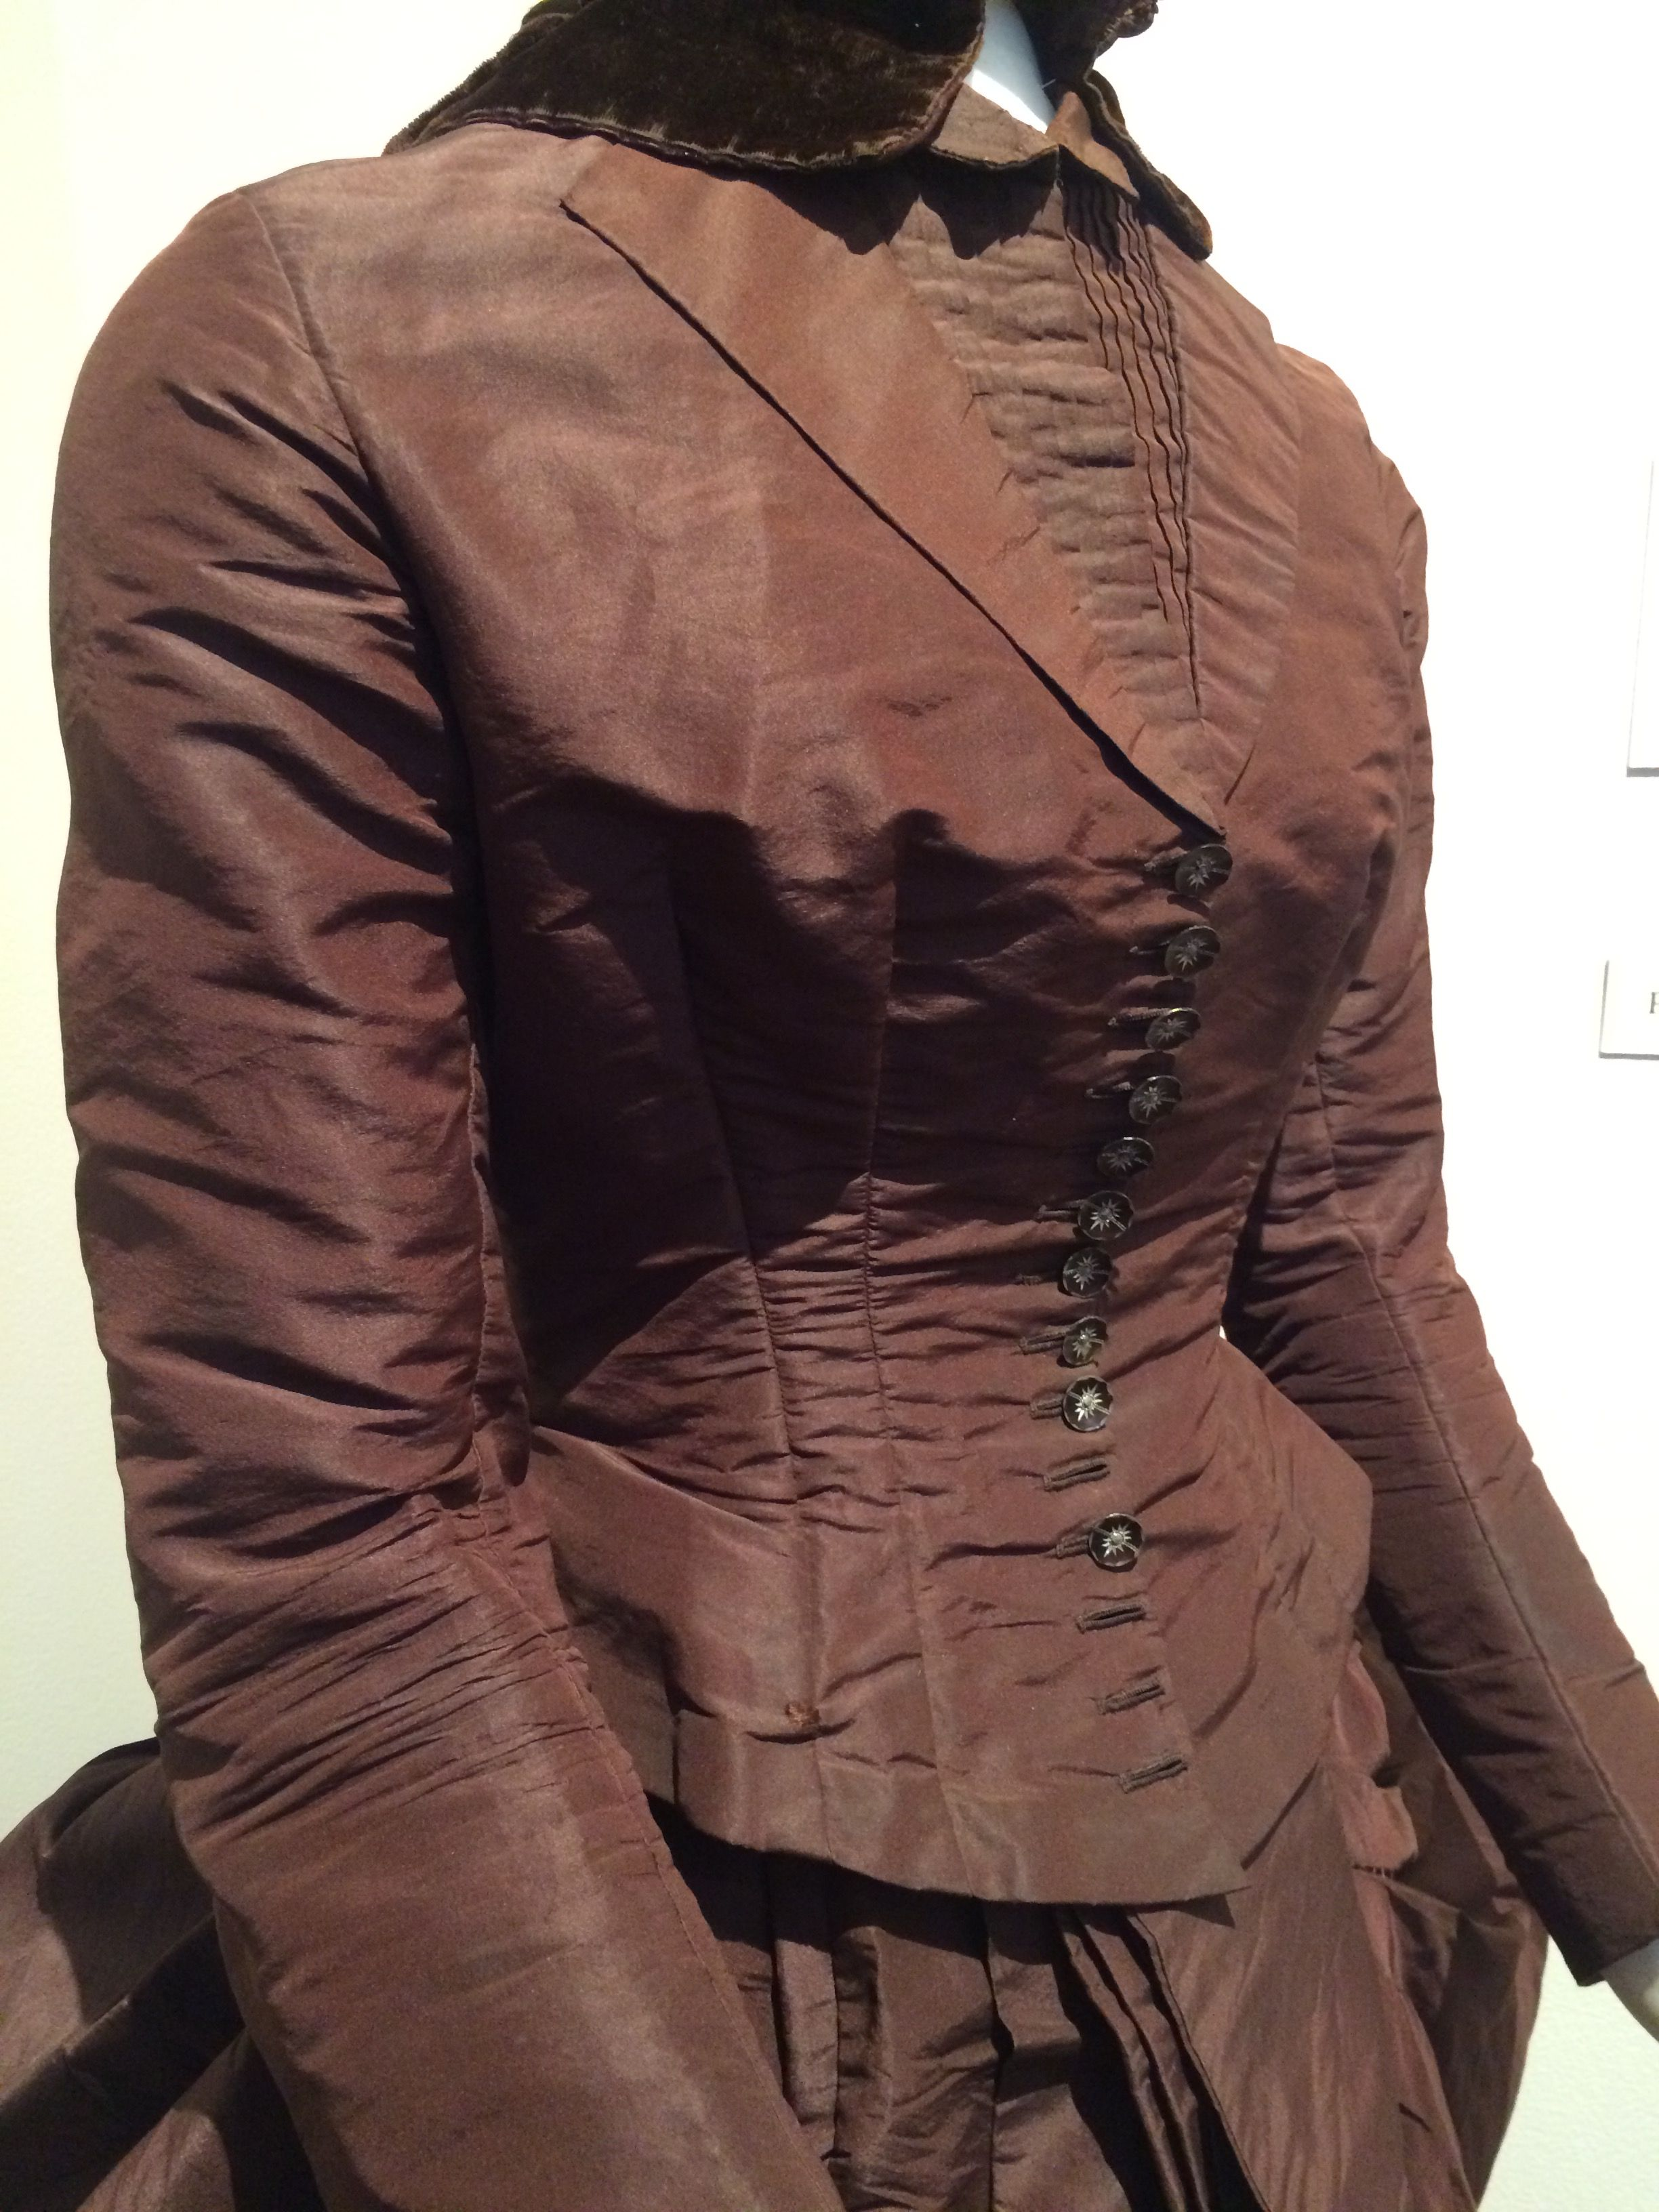 Wedding suit worn in 1887 by Rosa Moyer